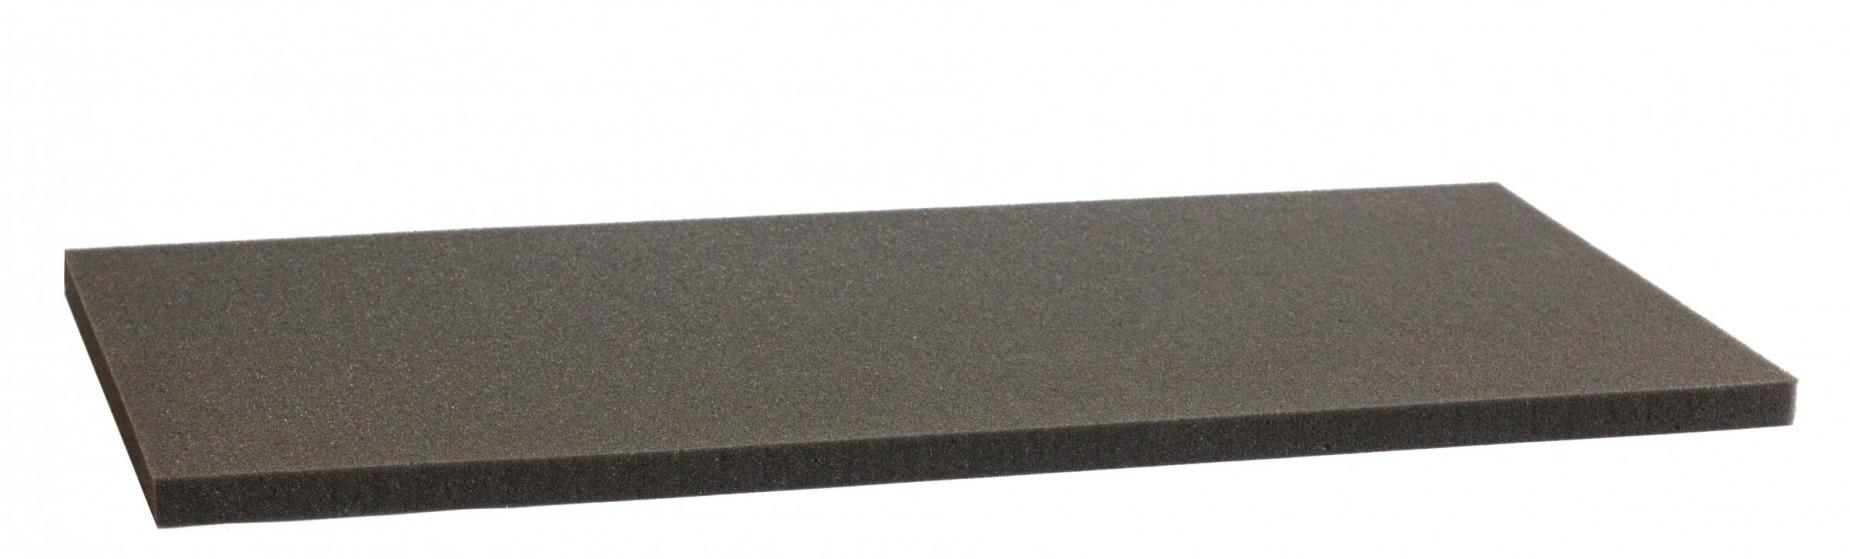 500 mm x 250 mm x 15 mm - Raster 12,5 mm - Pick and Pluck / Pre-Cubed foam tray